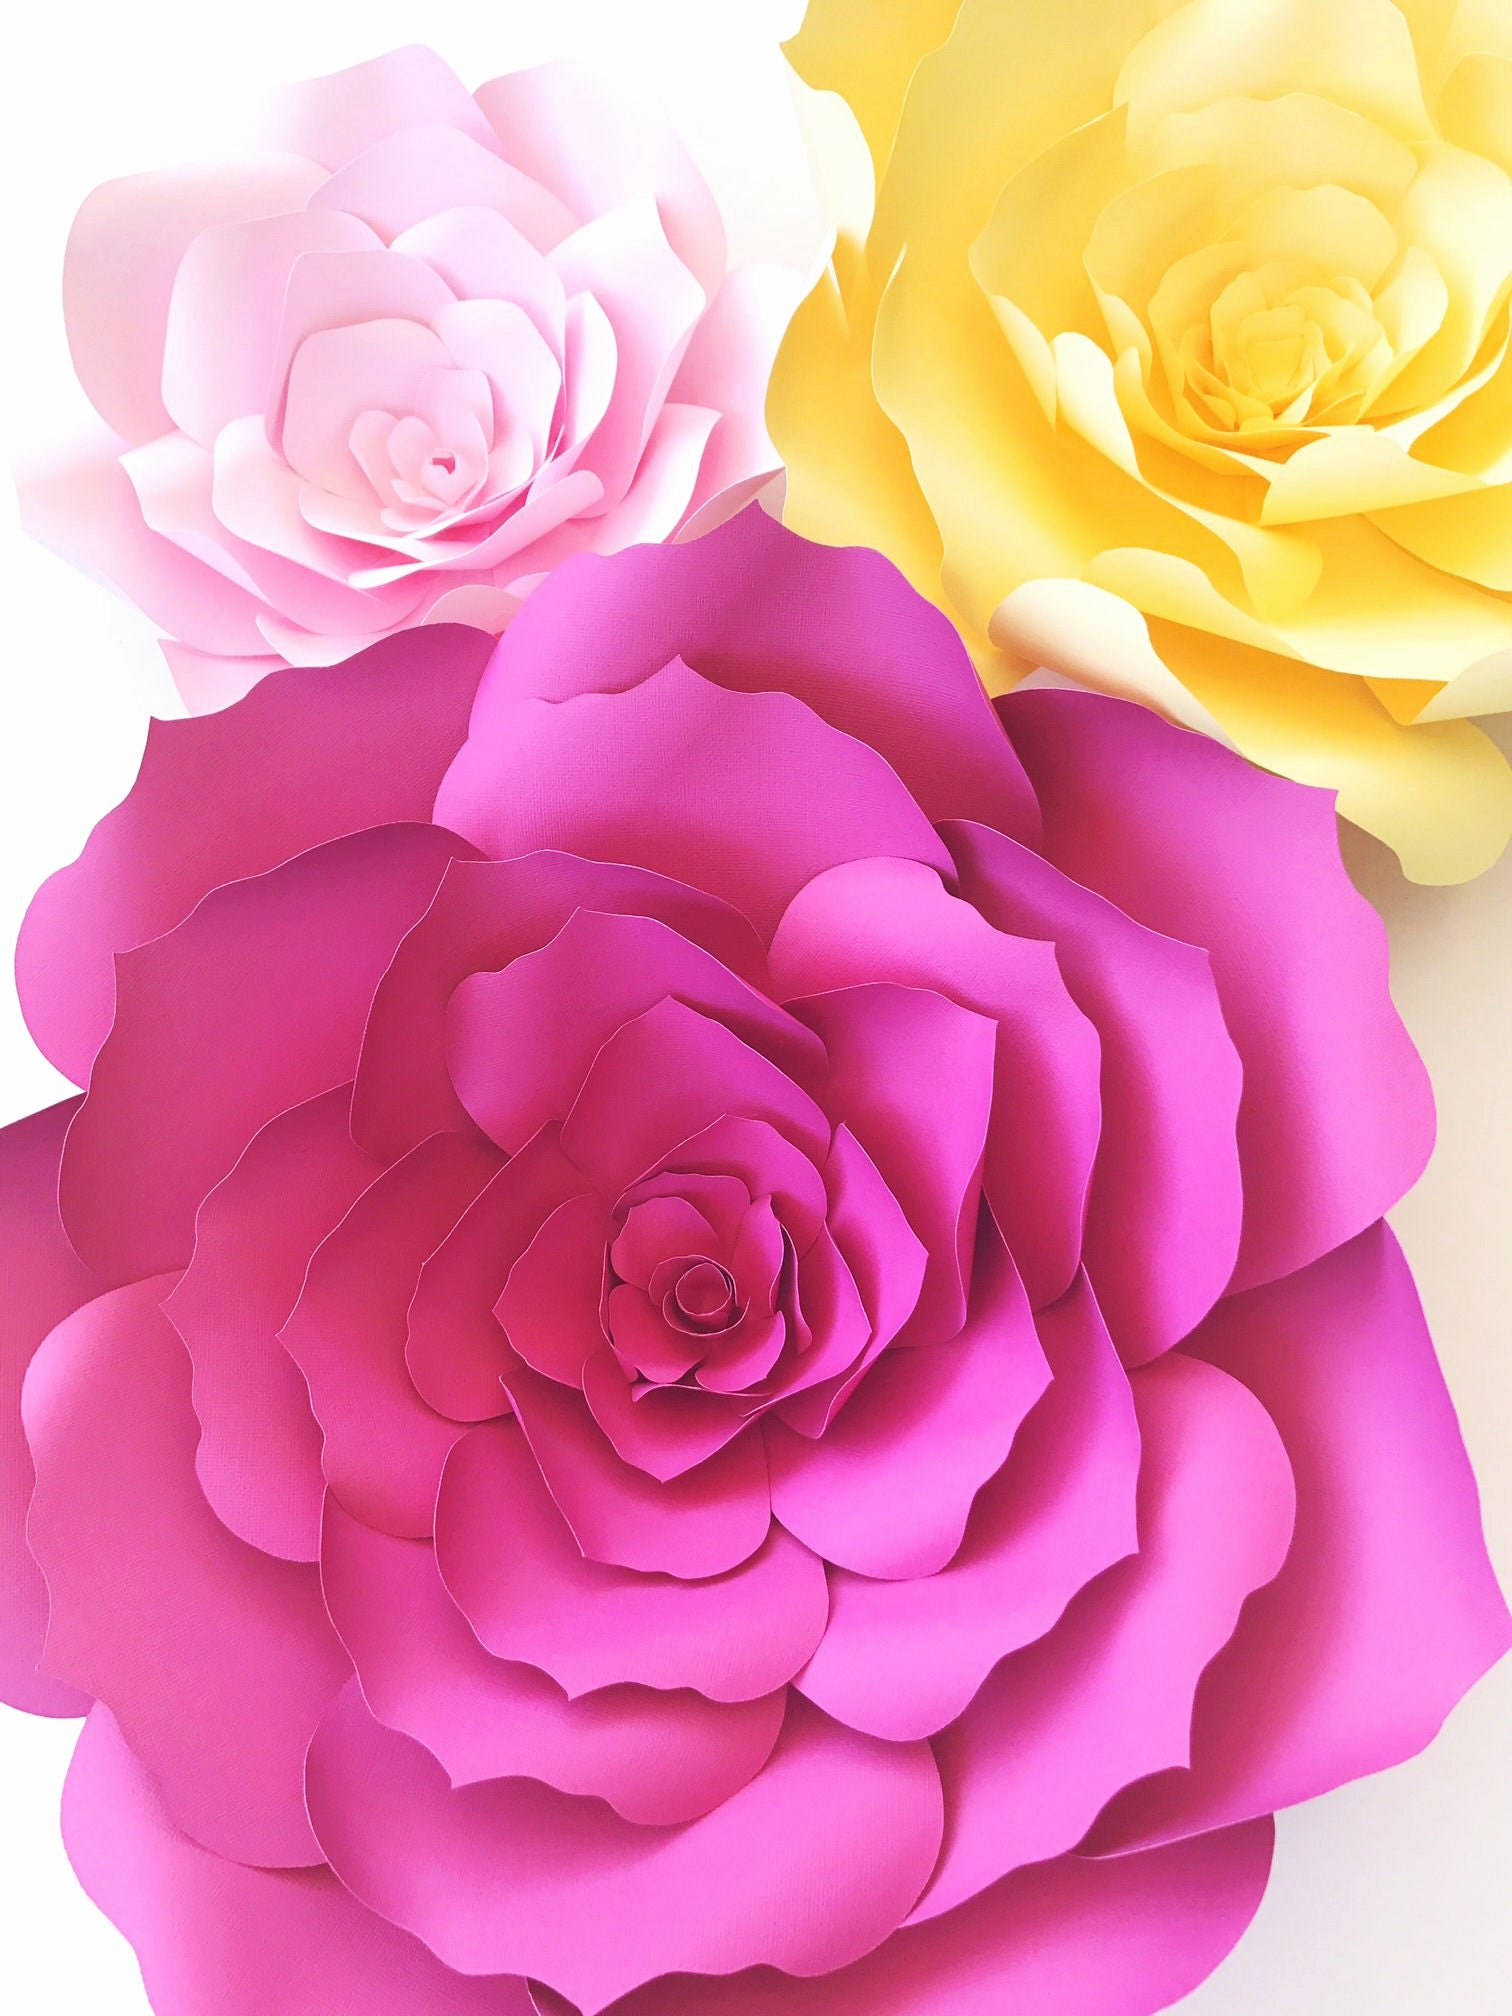 Diy Paper Flower Template New Paper Flower Templates Include Video Instructions Diy Paper